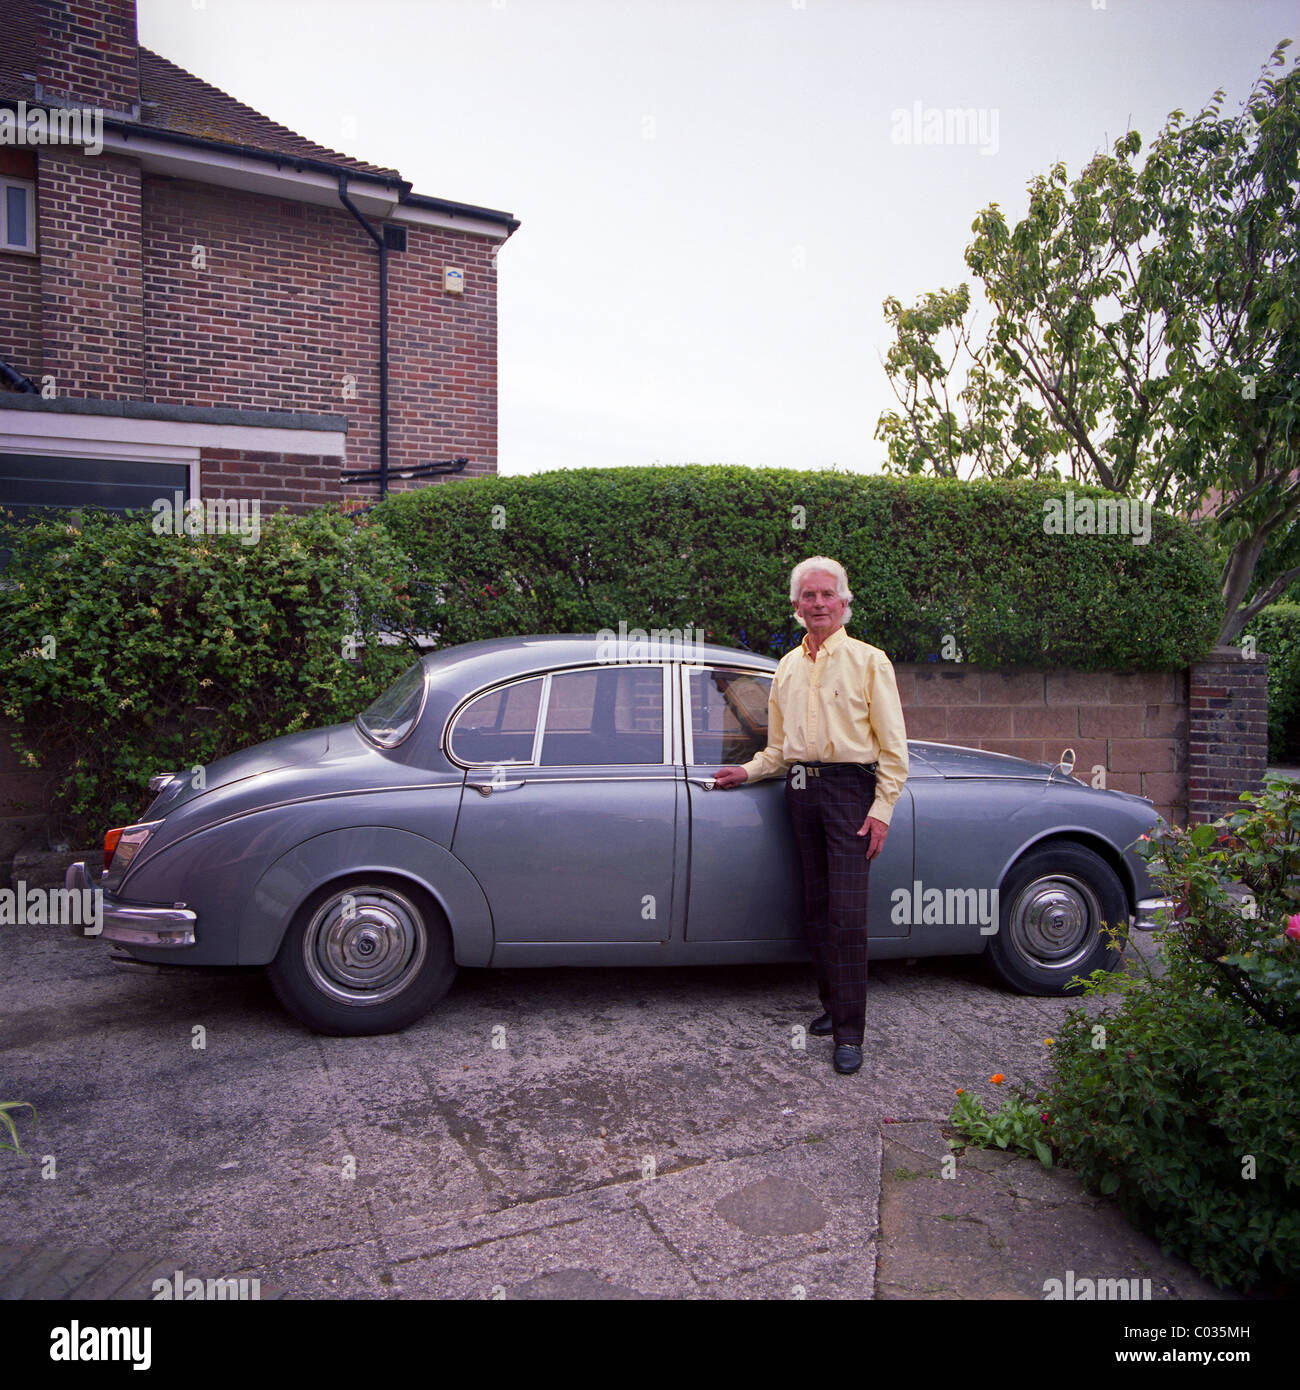 1960s Daimler 2.5L Classic saloon car and owner, Worthing, West Sussex, UK - Stock Image